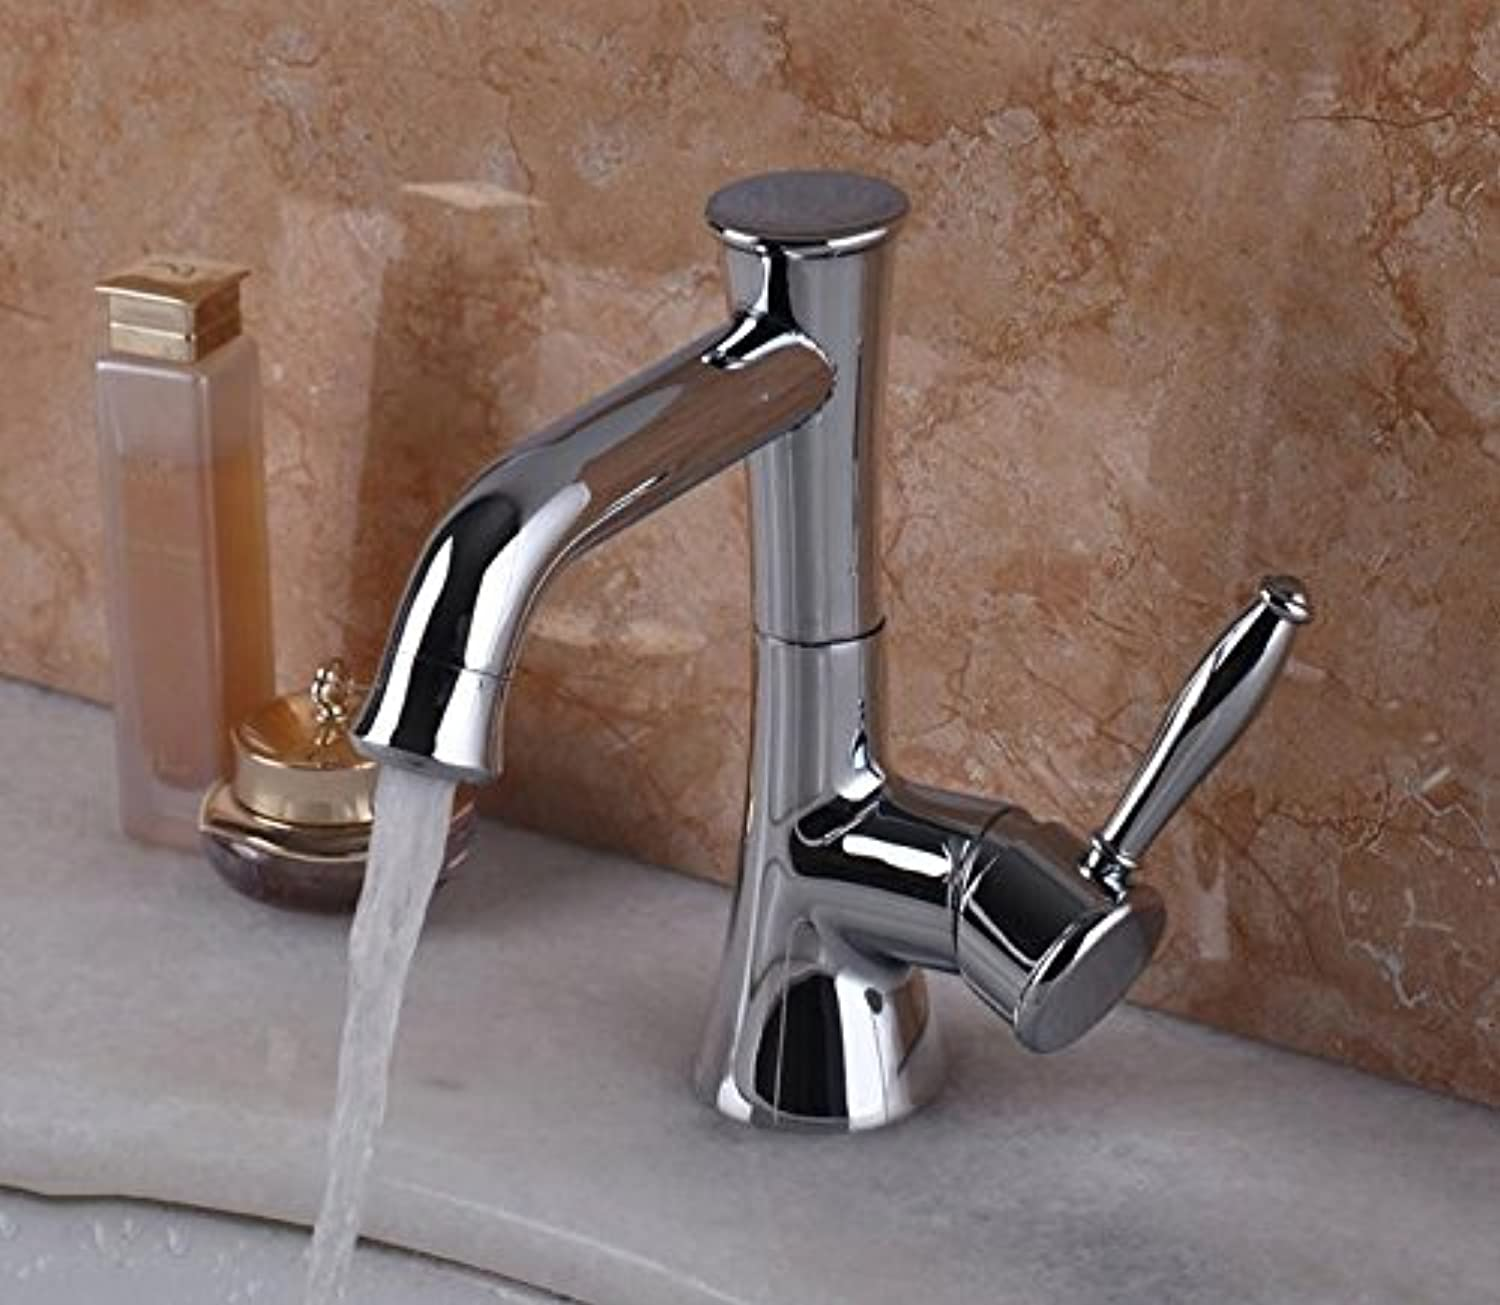 Makej Bathroom Faucets Sink Mixer Water Tap W Single Handle Single Hole Taps